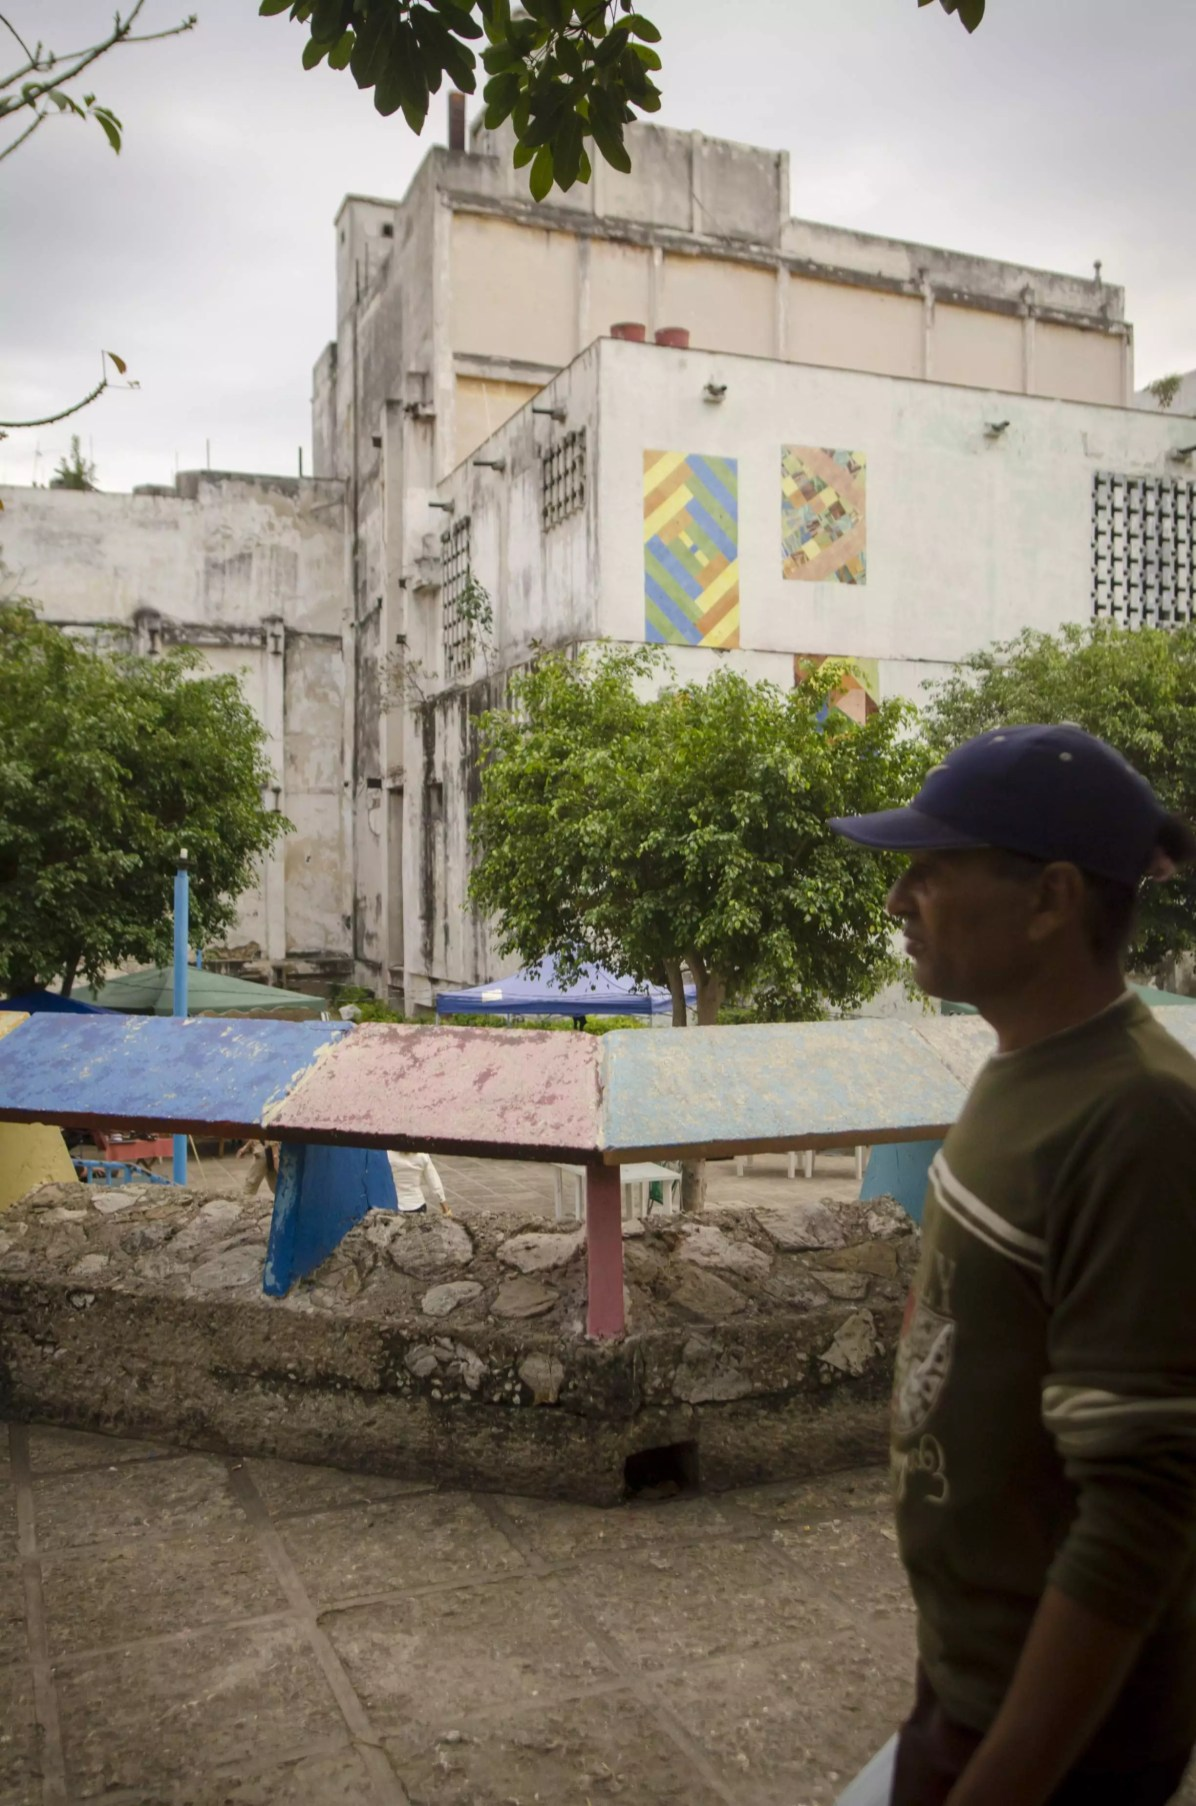 Things to do in Havana: A walk down the street Where to stay in Havana